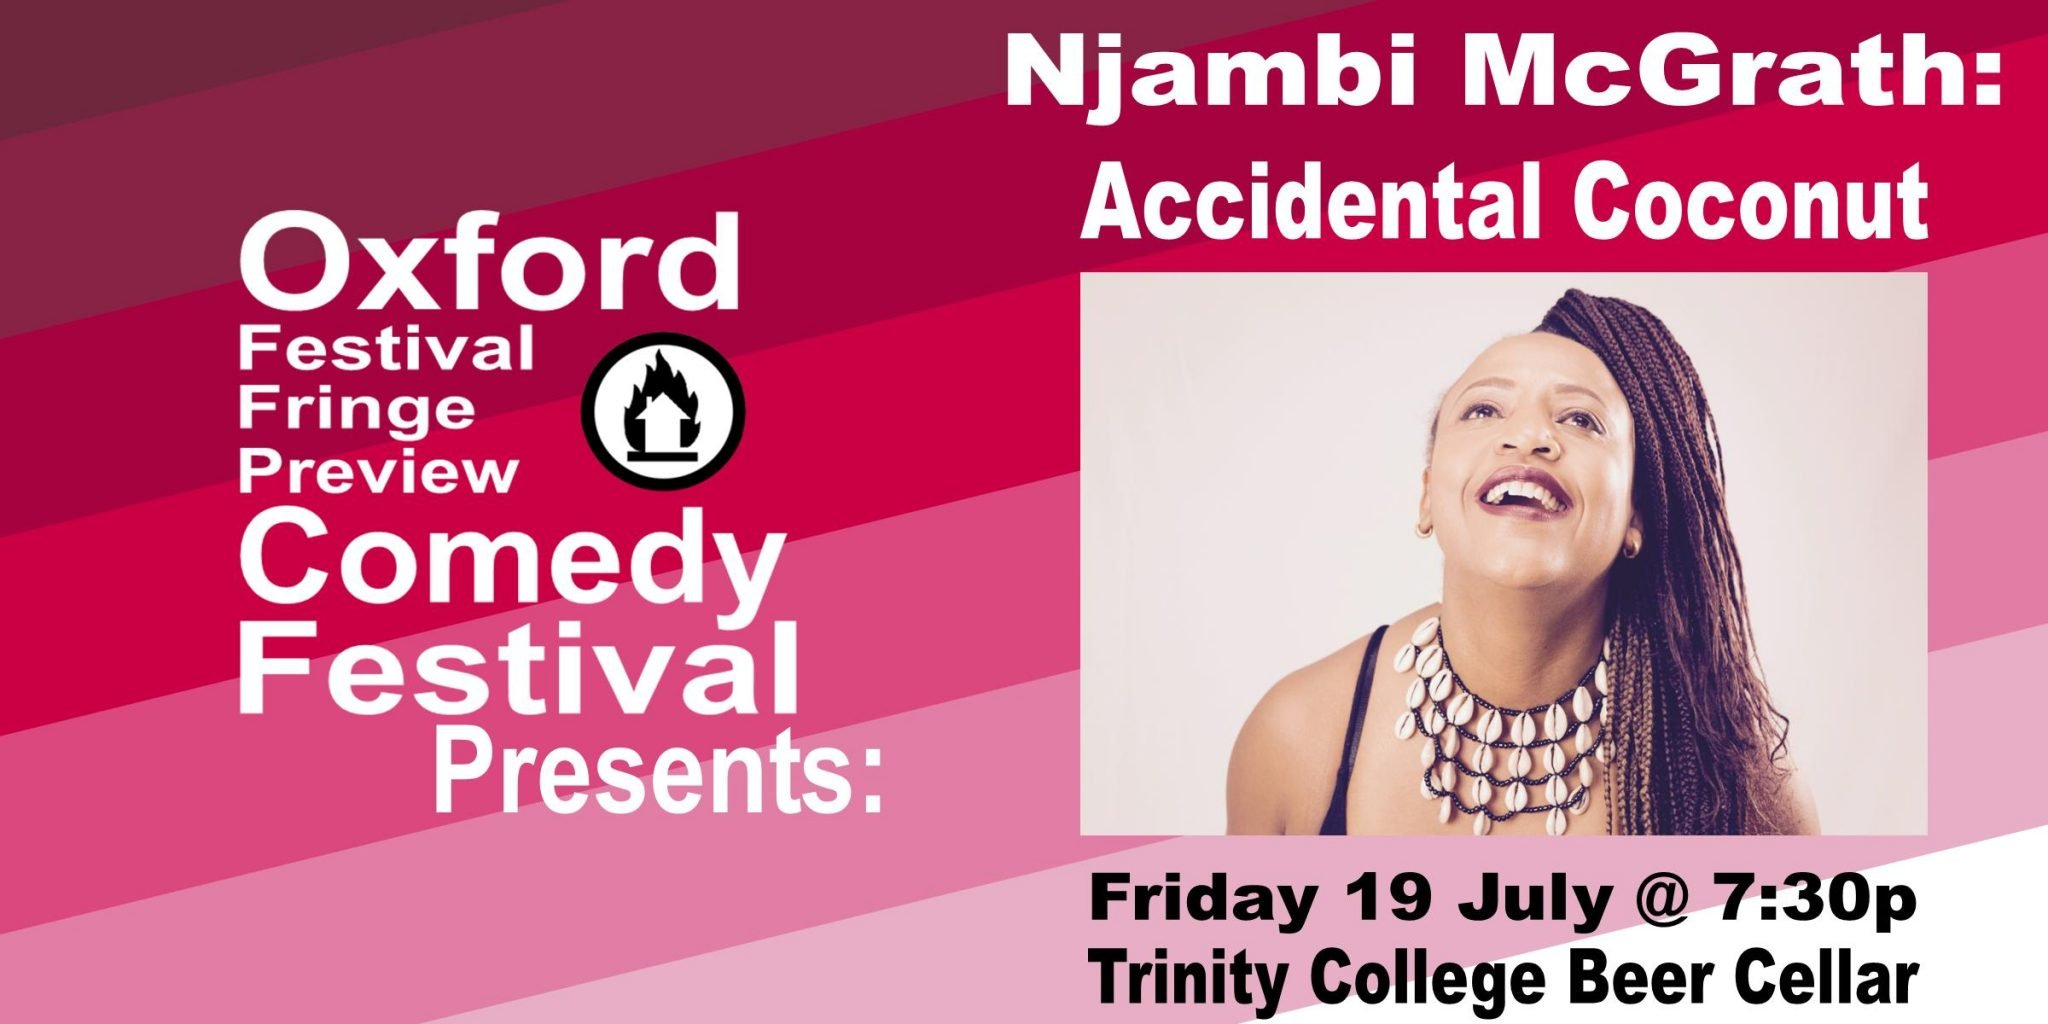 Oxford Comedy Festival 2019 presents Njambi McGrath: Accidental Coconut